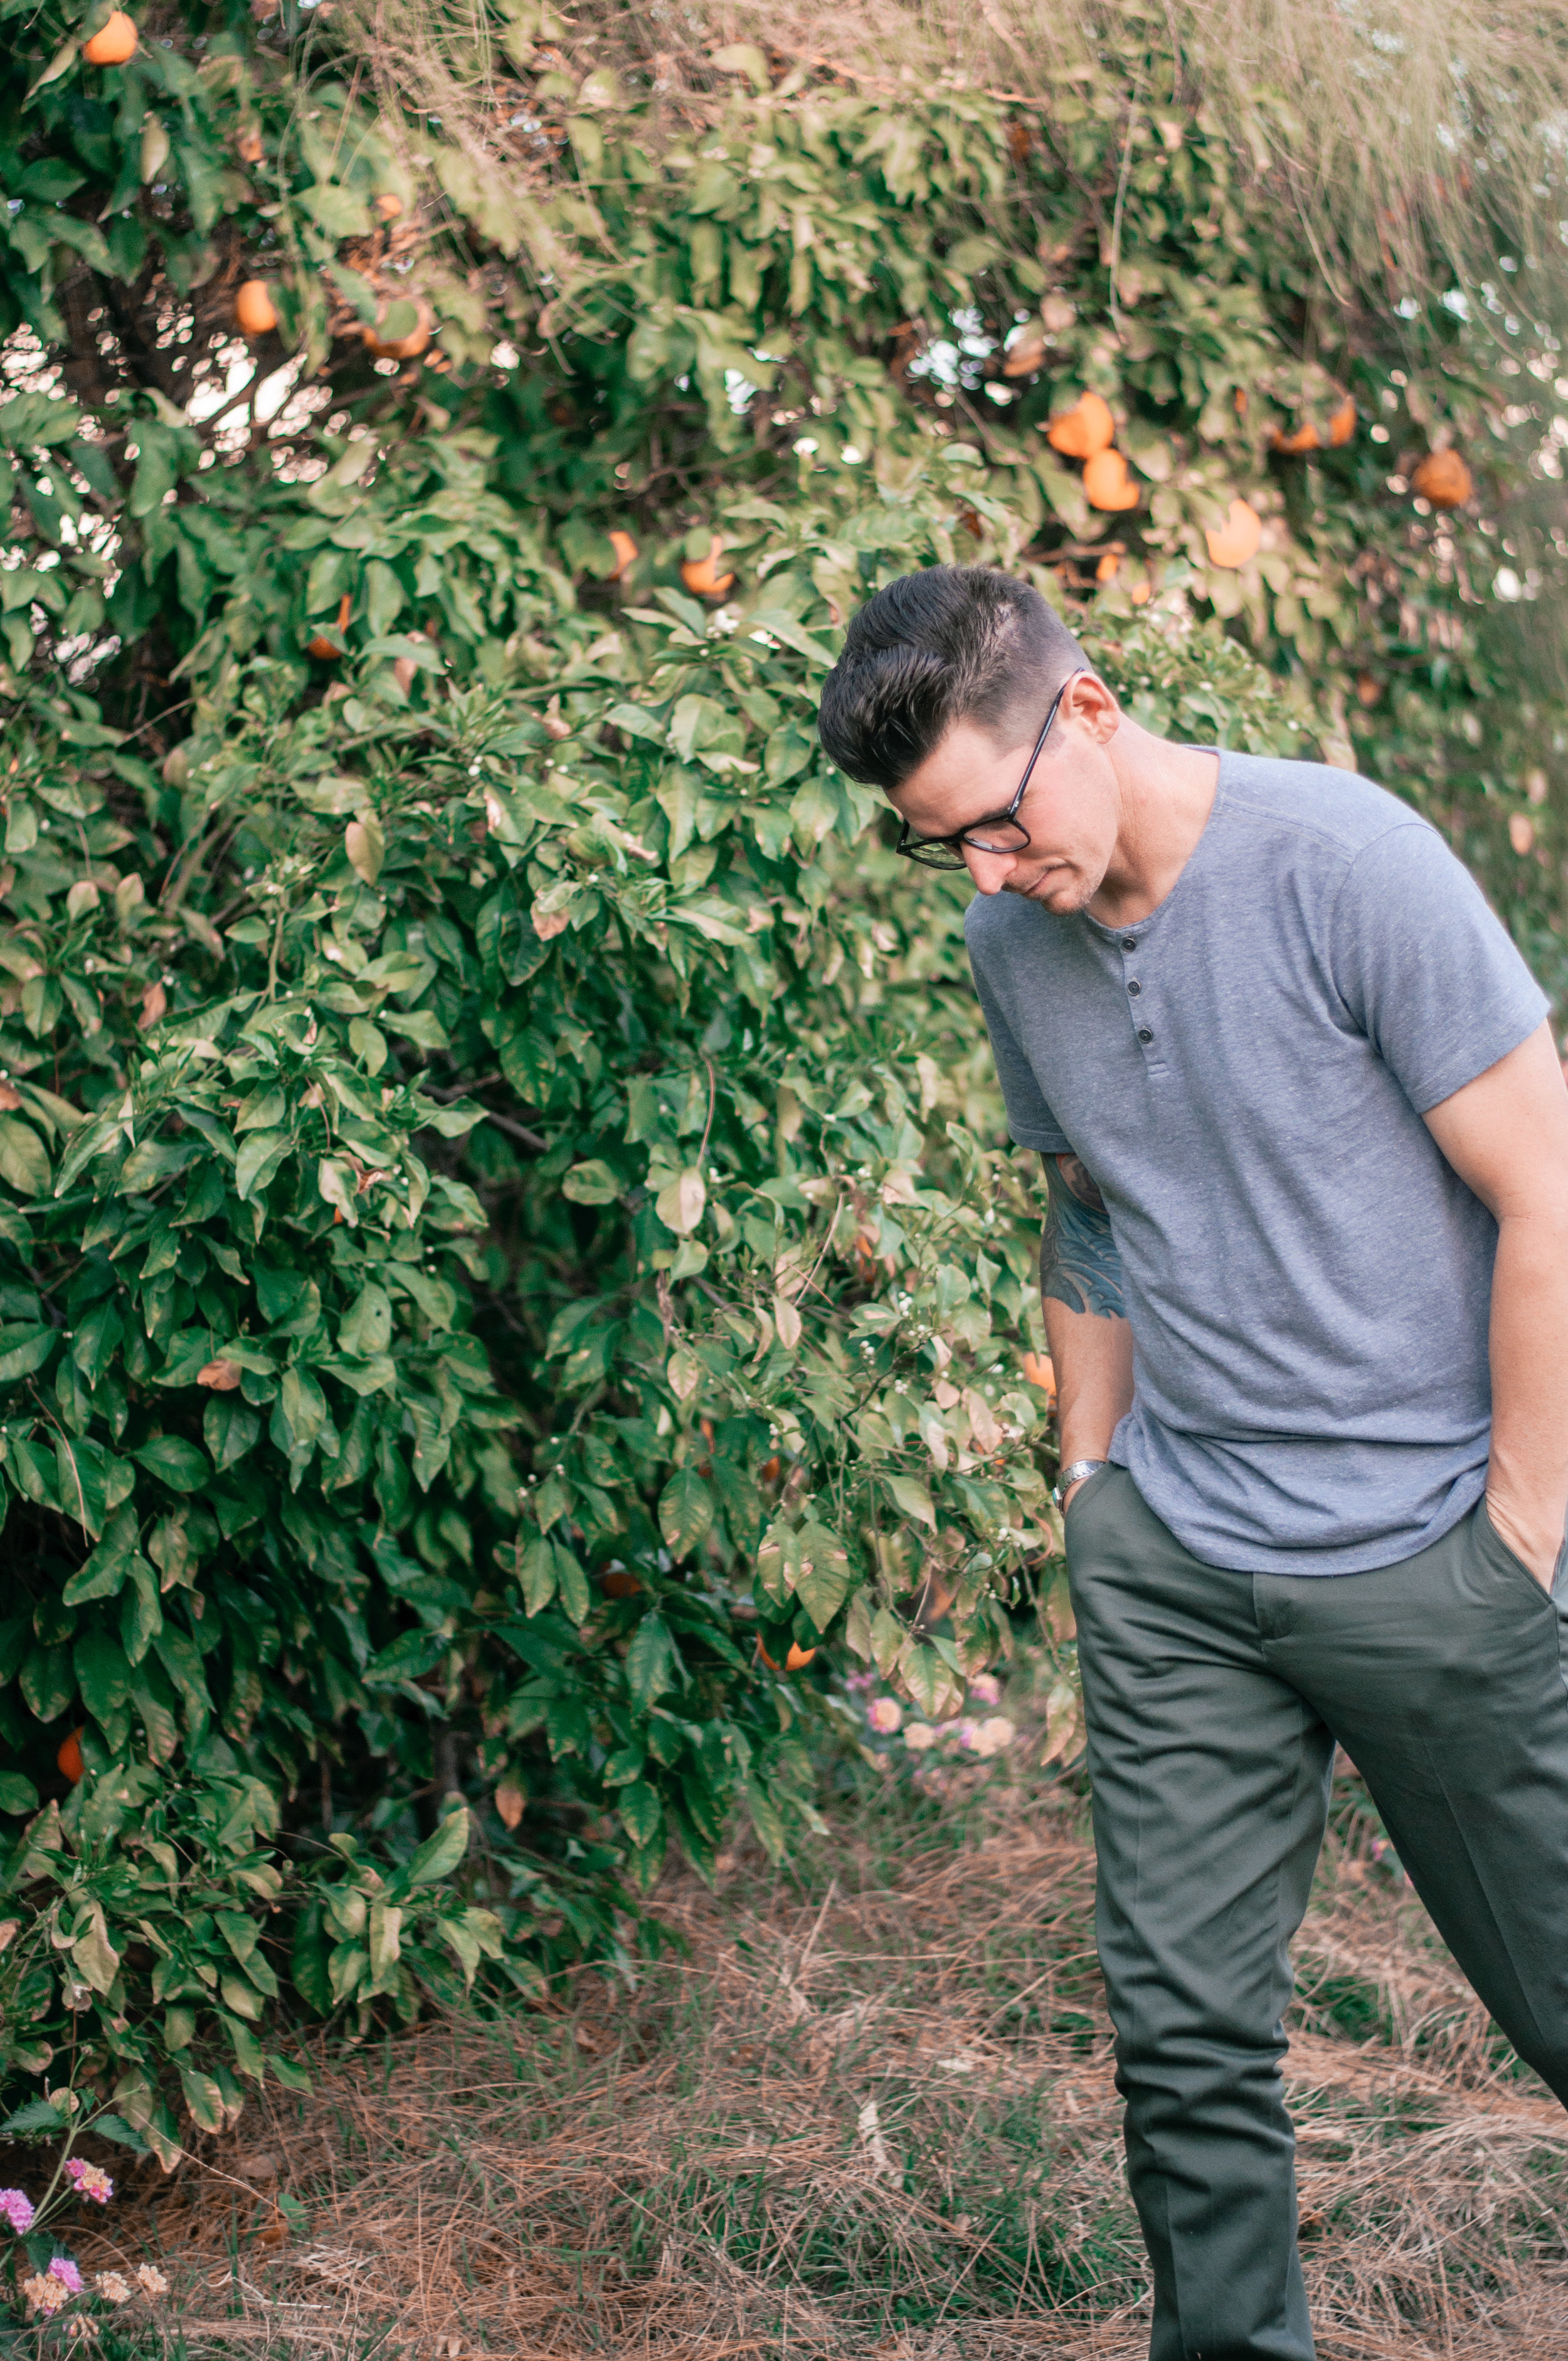 Men's Casual Grey and Green Outfit